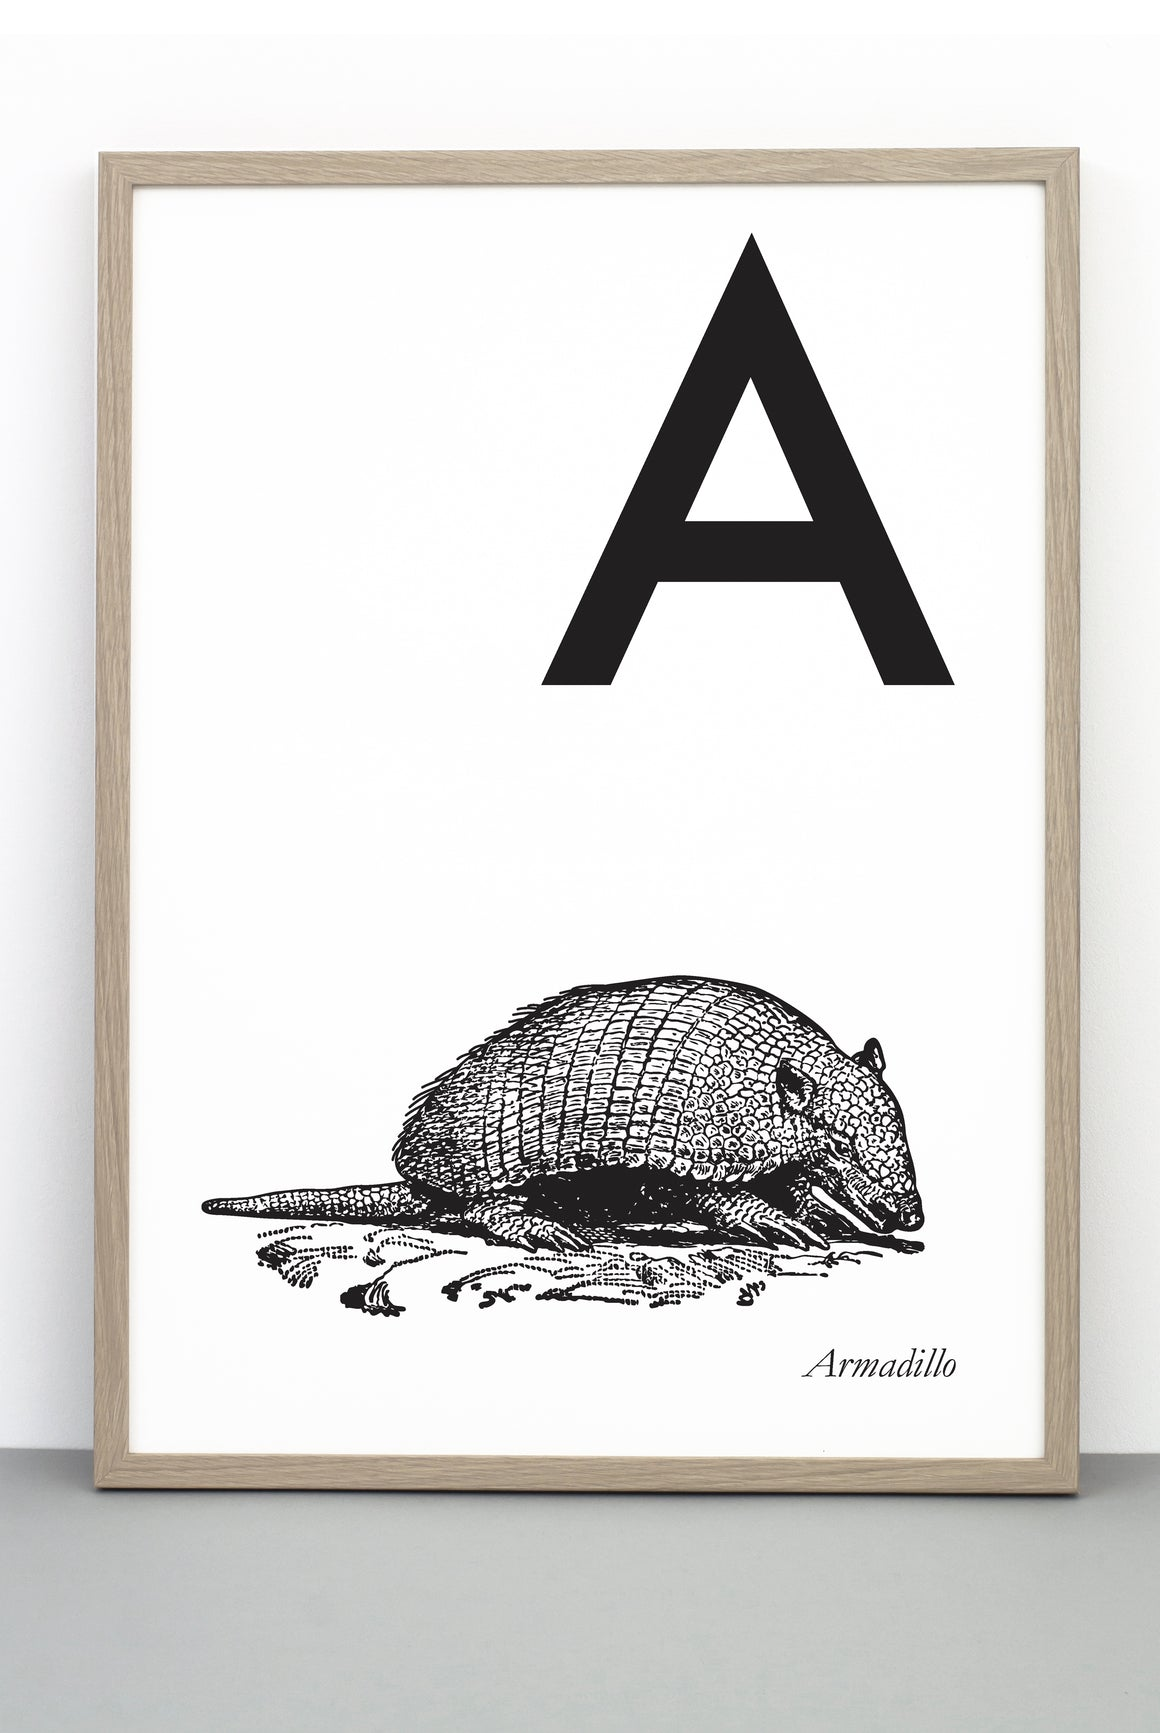 ANIMAL LETTER A, ARMADILLO, A PRINTABLE PRINT / POSTER